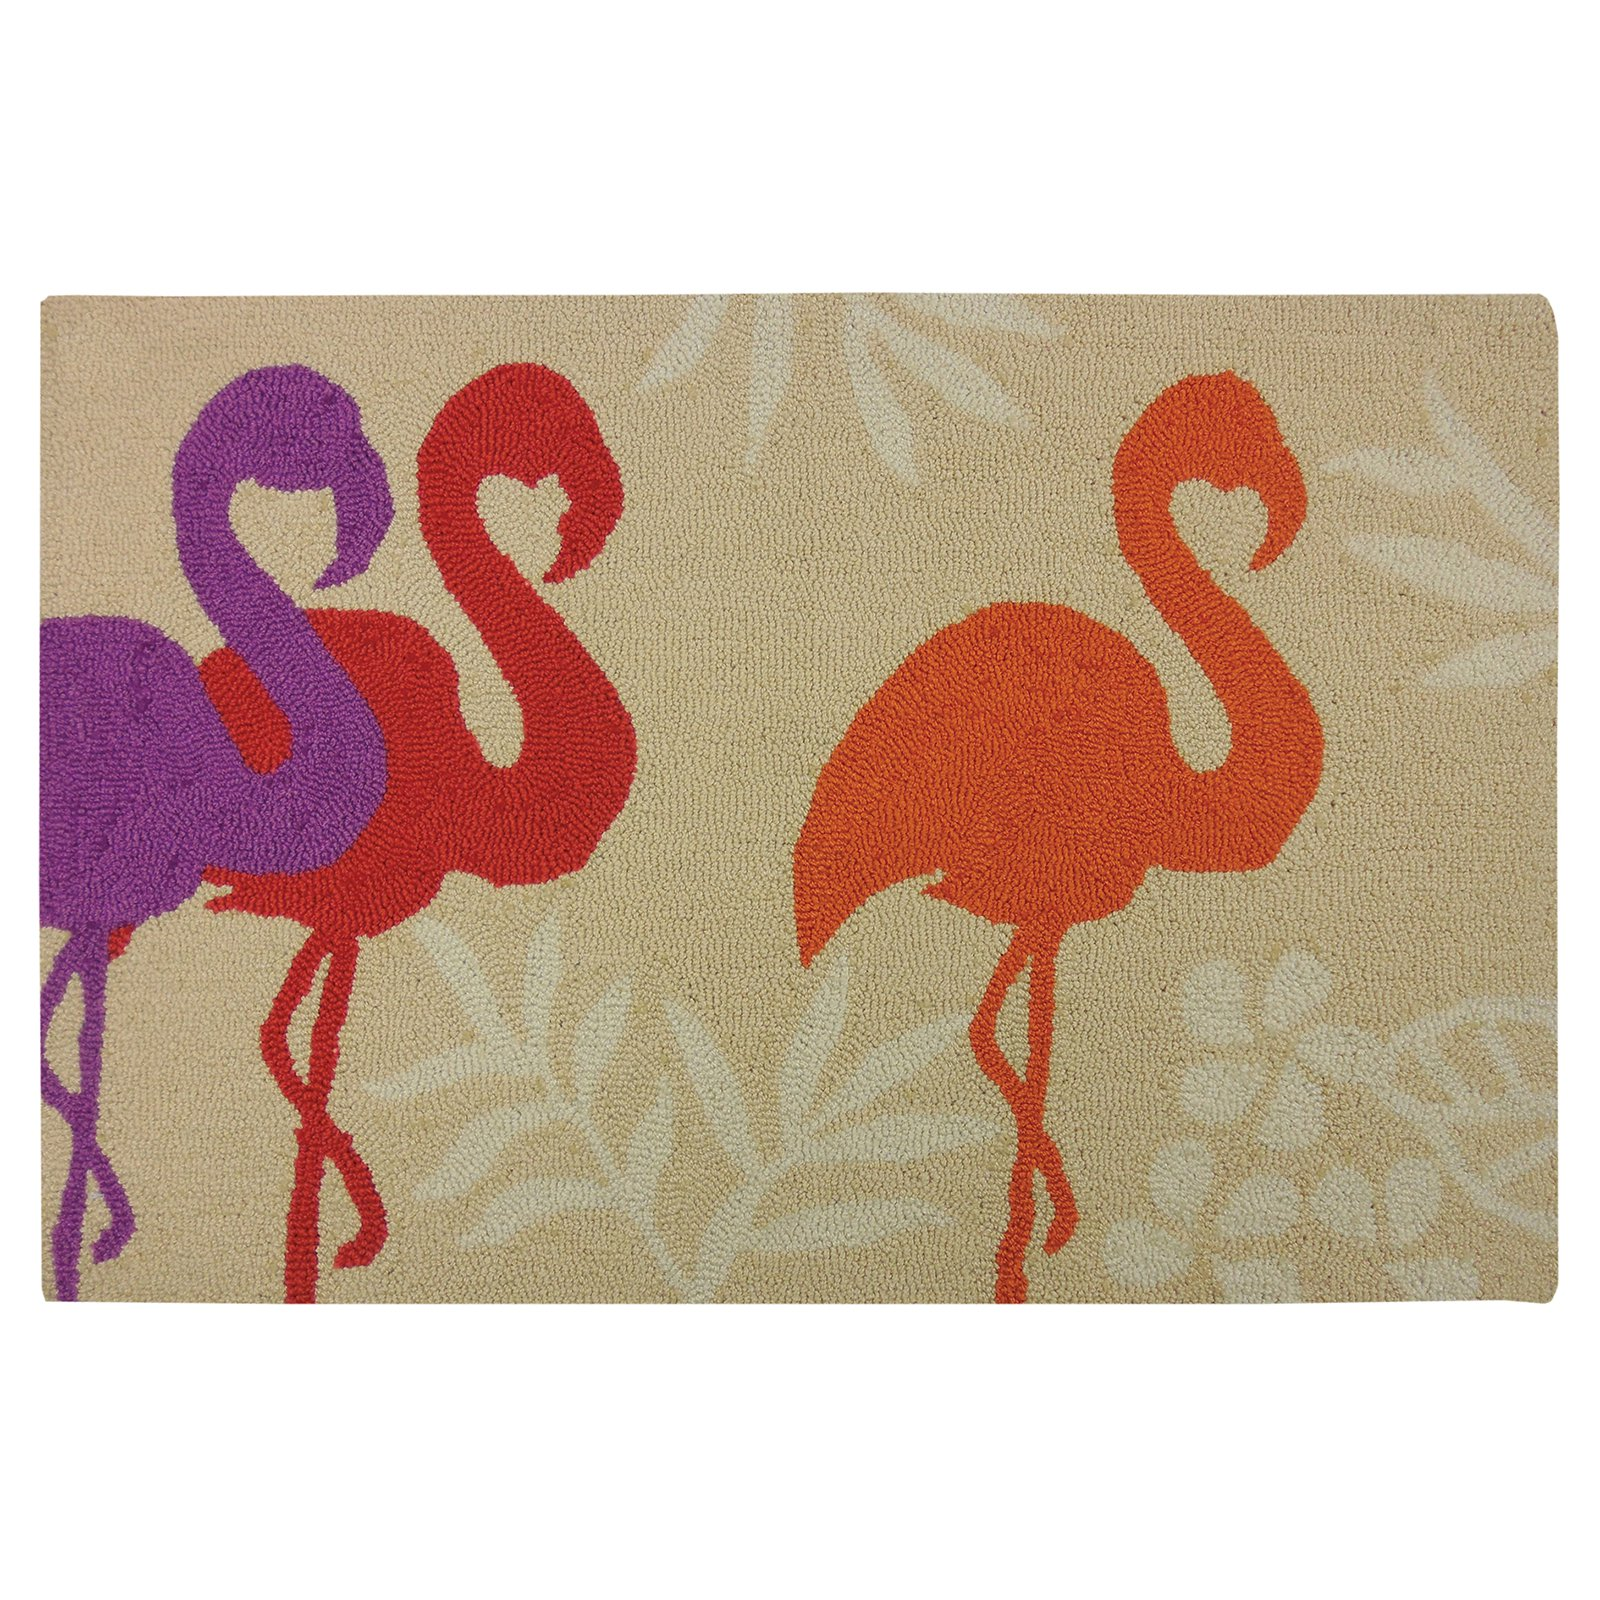 Homefires Flamingo Silhouette Indoor Doormat